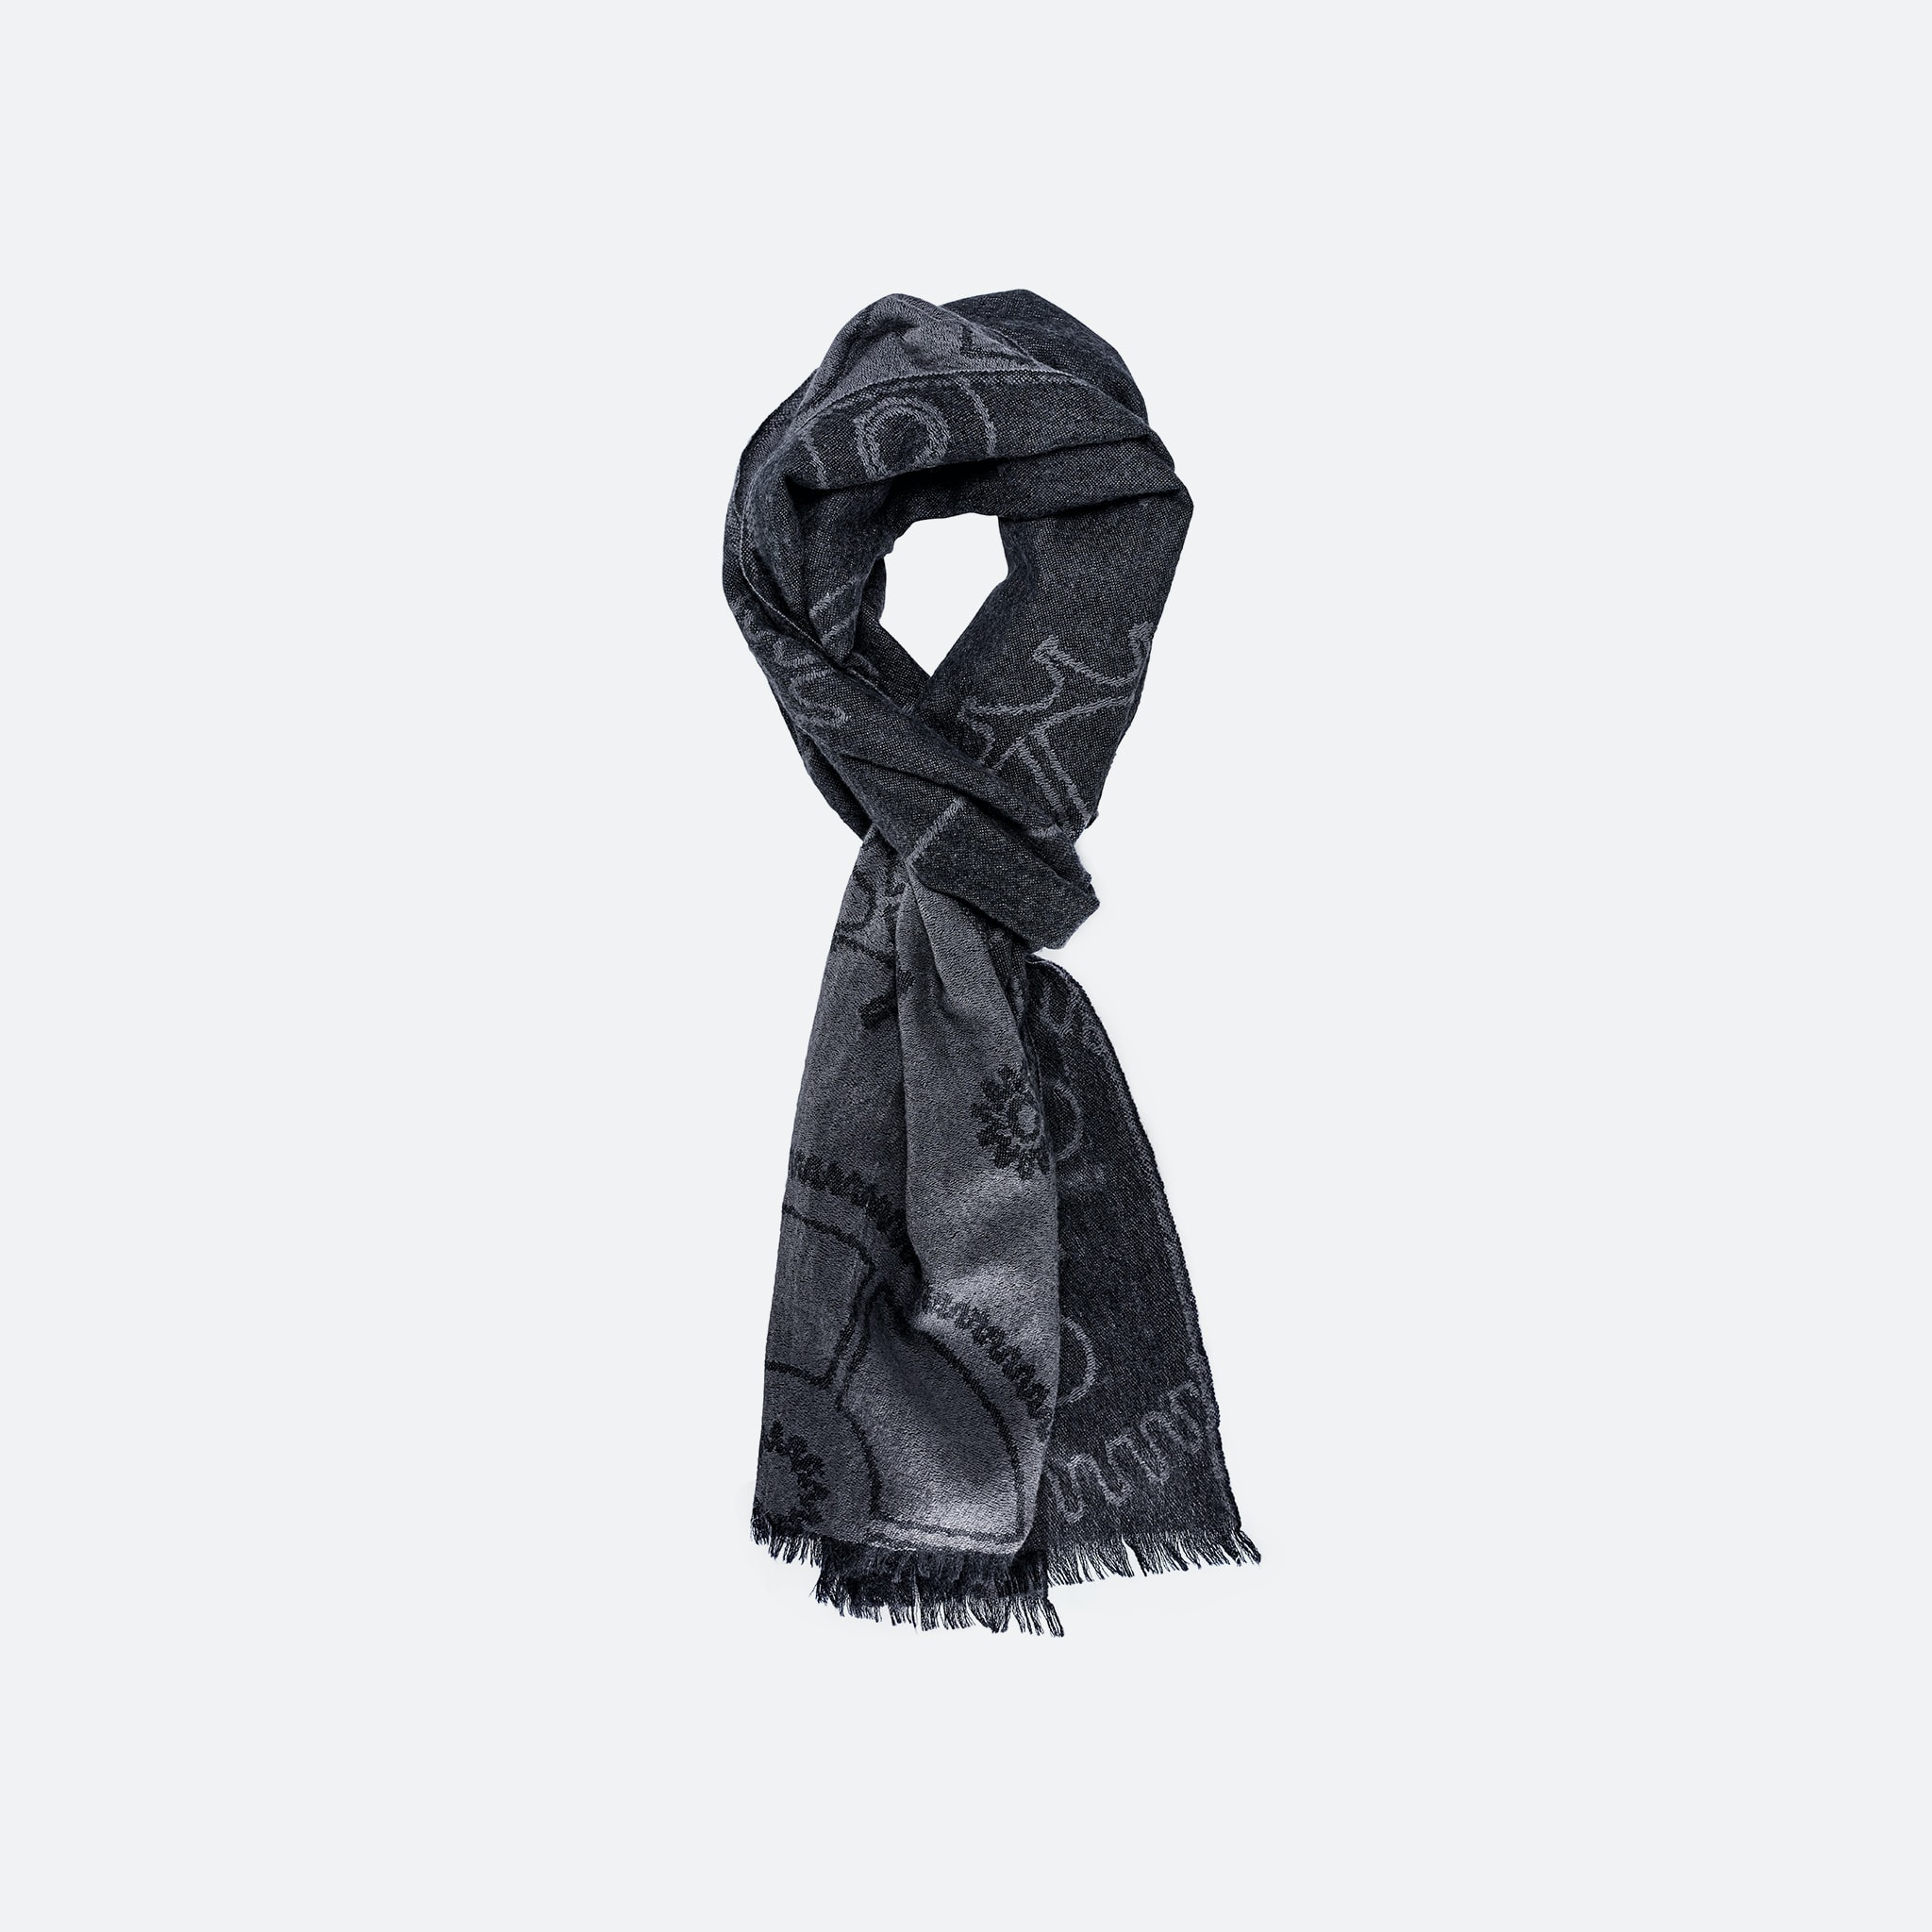 The Watch Lovers Scarf is made of 100% cashmere. In The Shop: Introducing The HODINKEE Holiday Gift Collection In The Shop: Introducing The HODINKEE Holiday Gift Collection SCARF WATCH OS 11